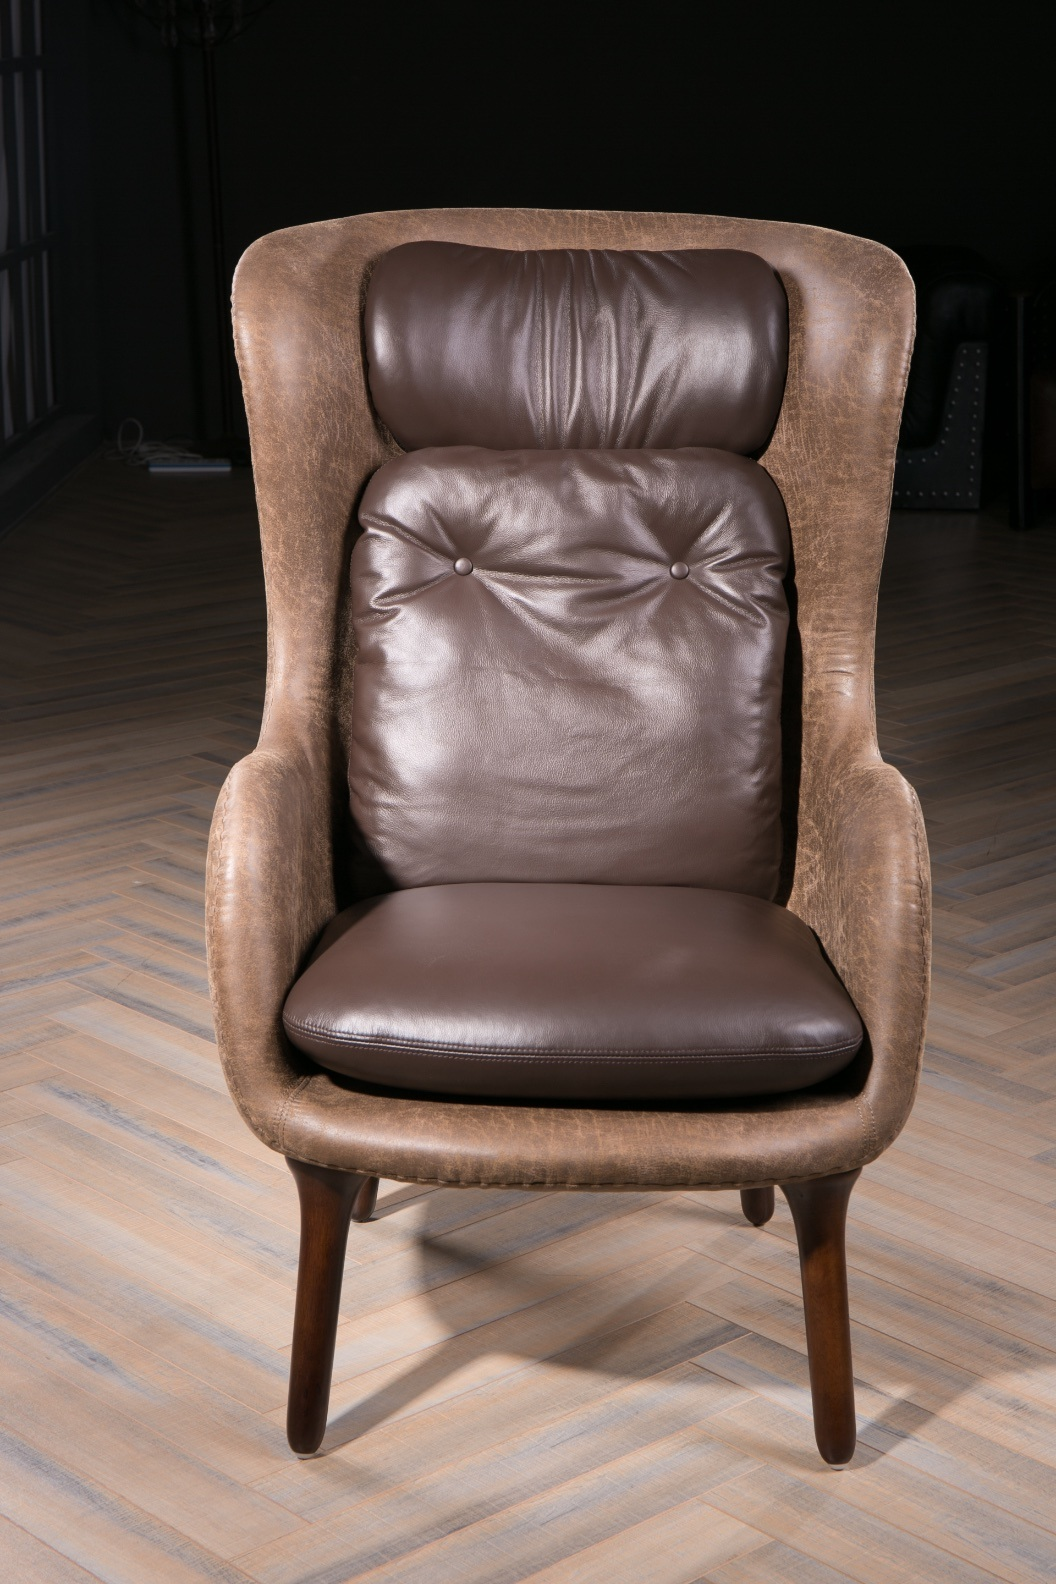 Swell China High Density Sponge Brown Color Replica Ro Lounge Ncnpc Chair Design For Home Ncnpcorg